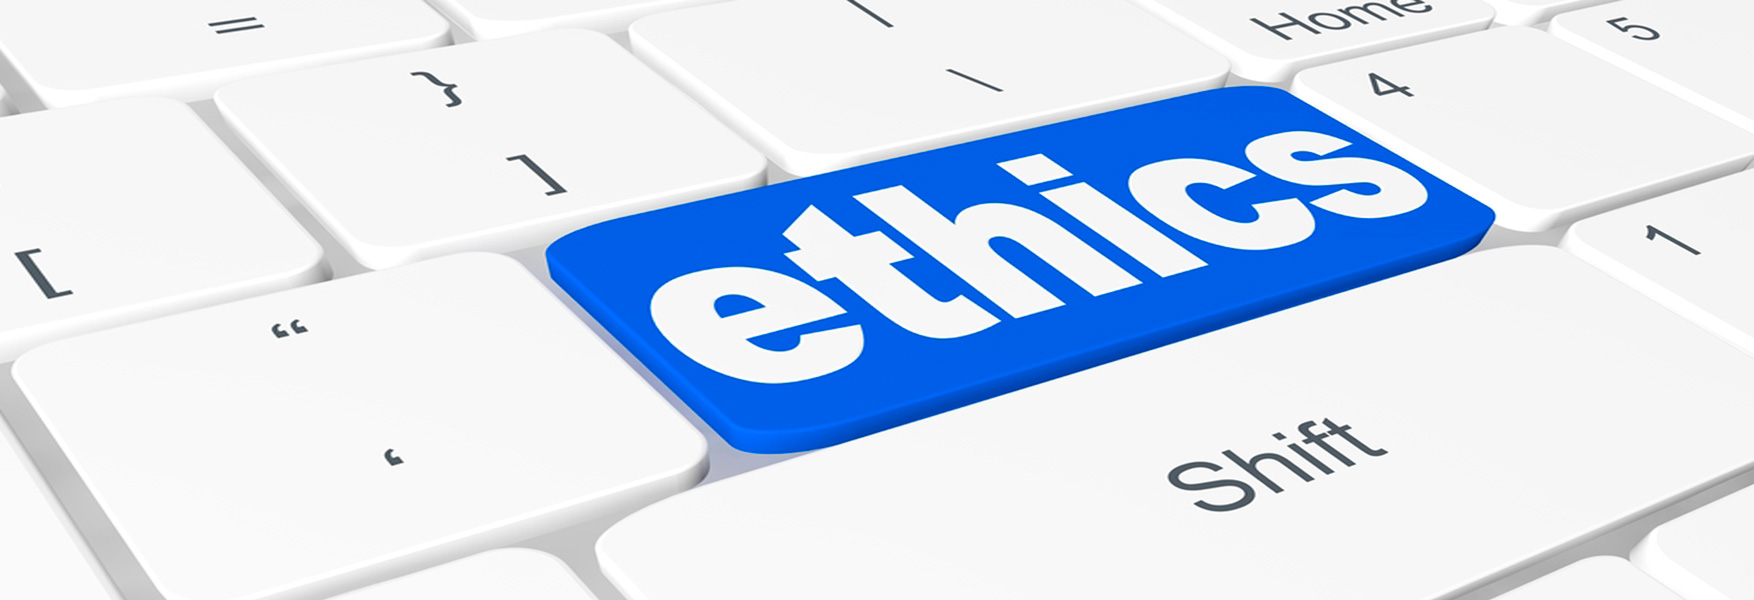 Ethics and the Internet - OpenMind